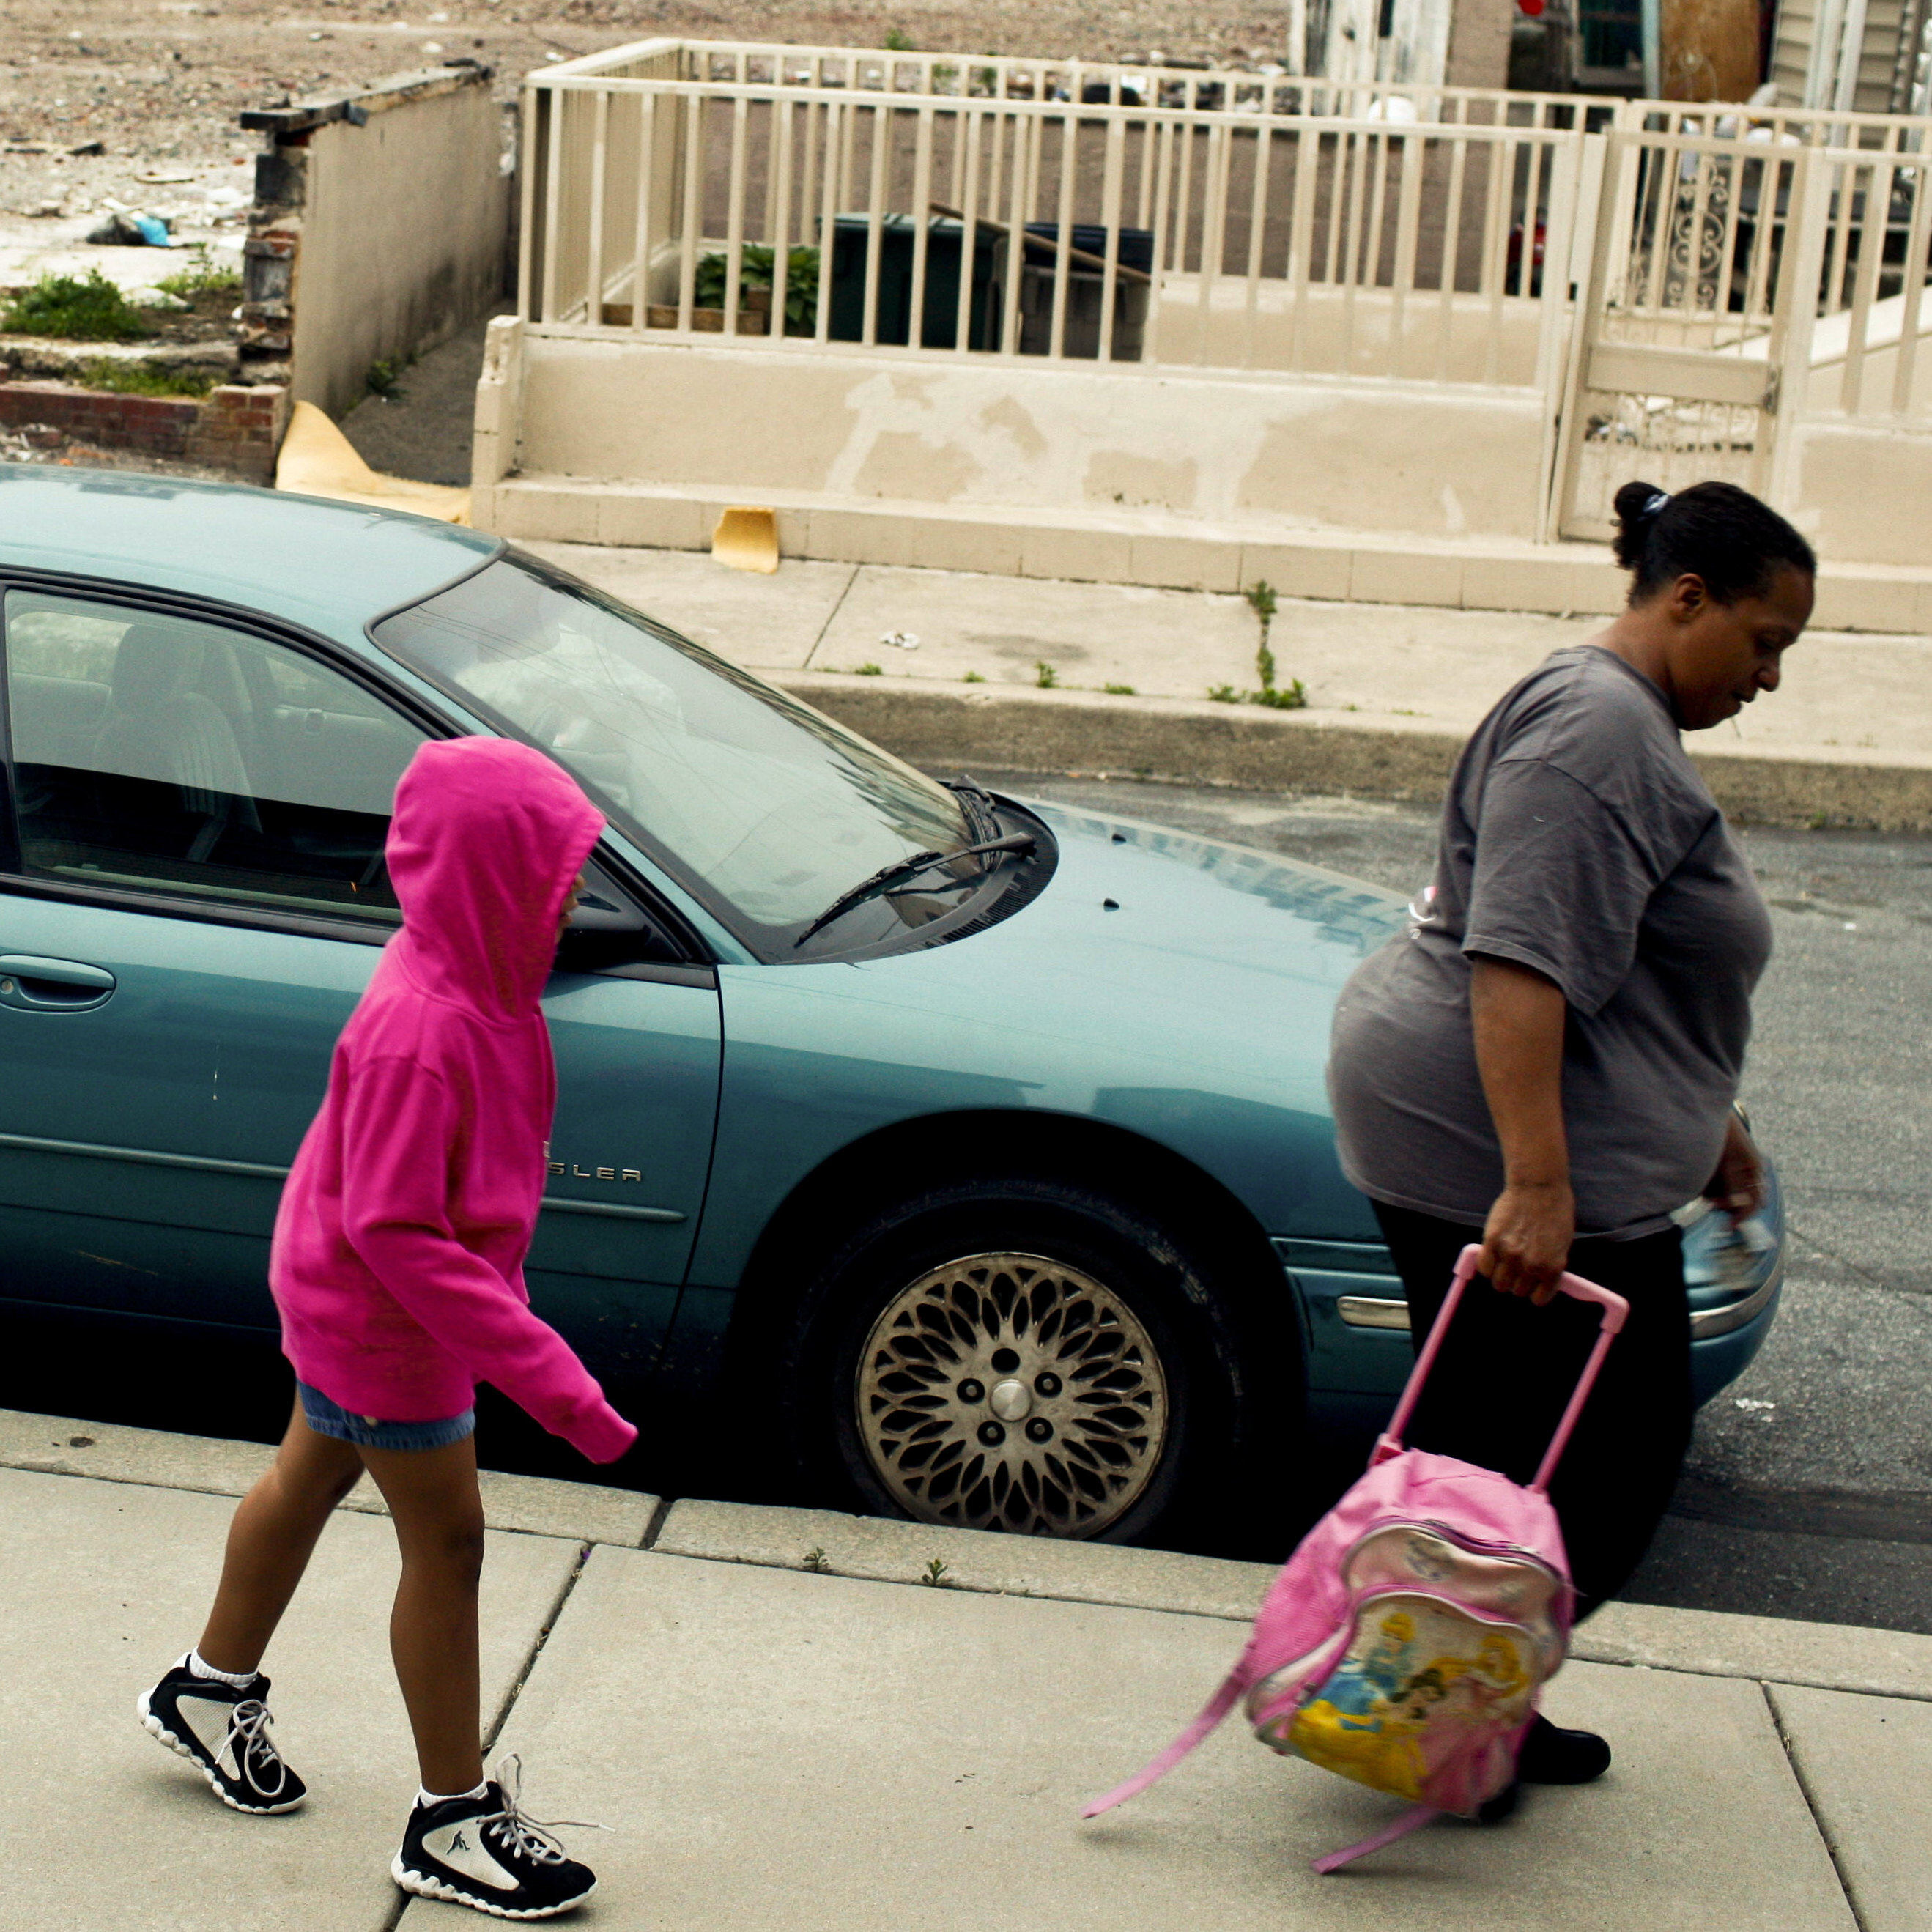 Tracy Boggs, 49, walks her daughter Emily, 7, to the Second Street Learning Center in Reading, Pa.